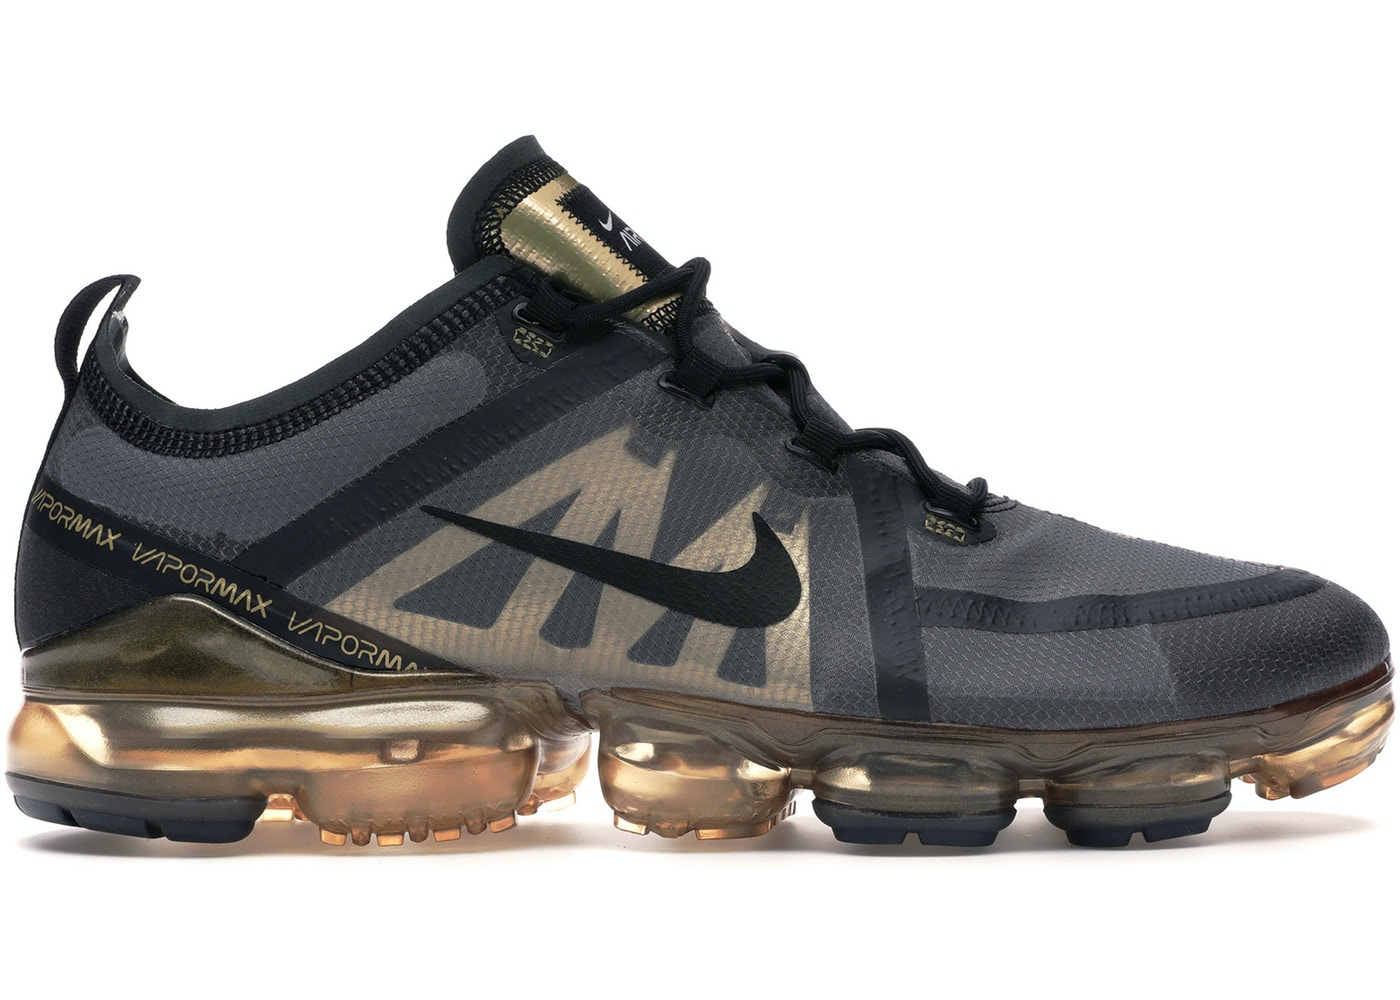 7da611007c Sell. or Ask. Size: 10.5. View All Bids. Air VaporMax 2019 Black Metallic  Gold